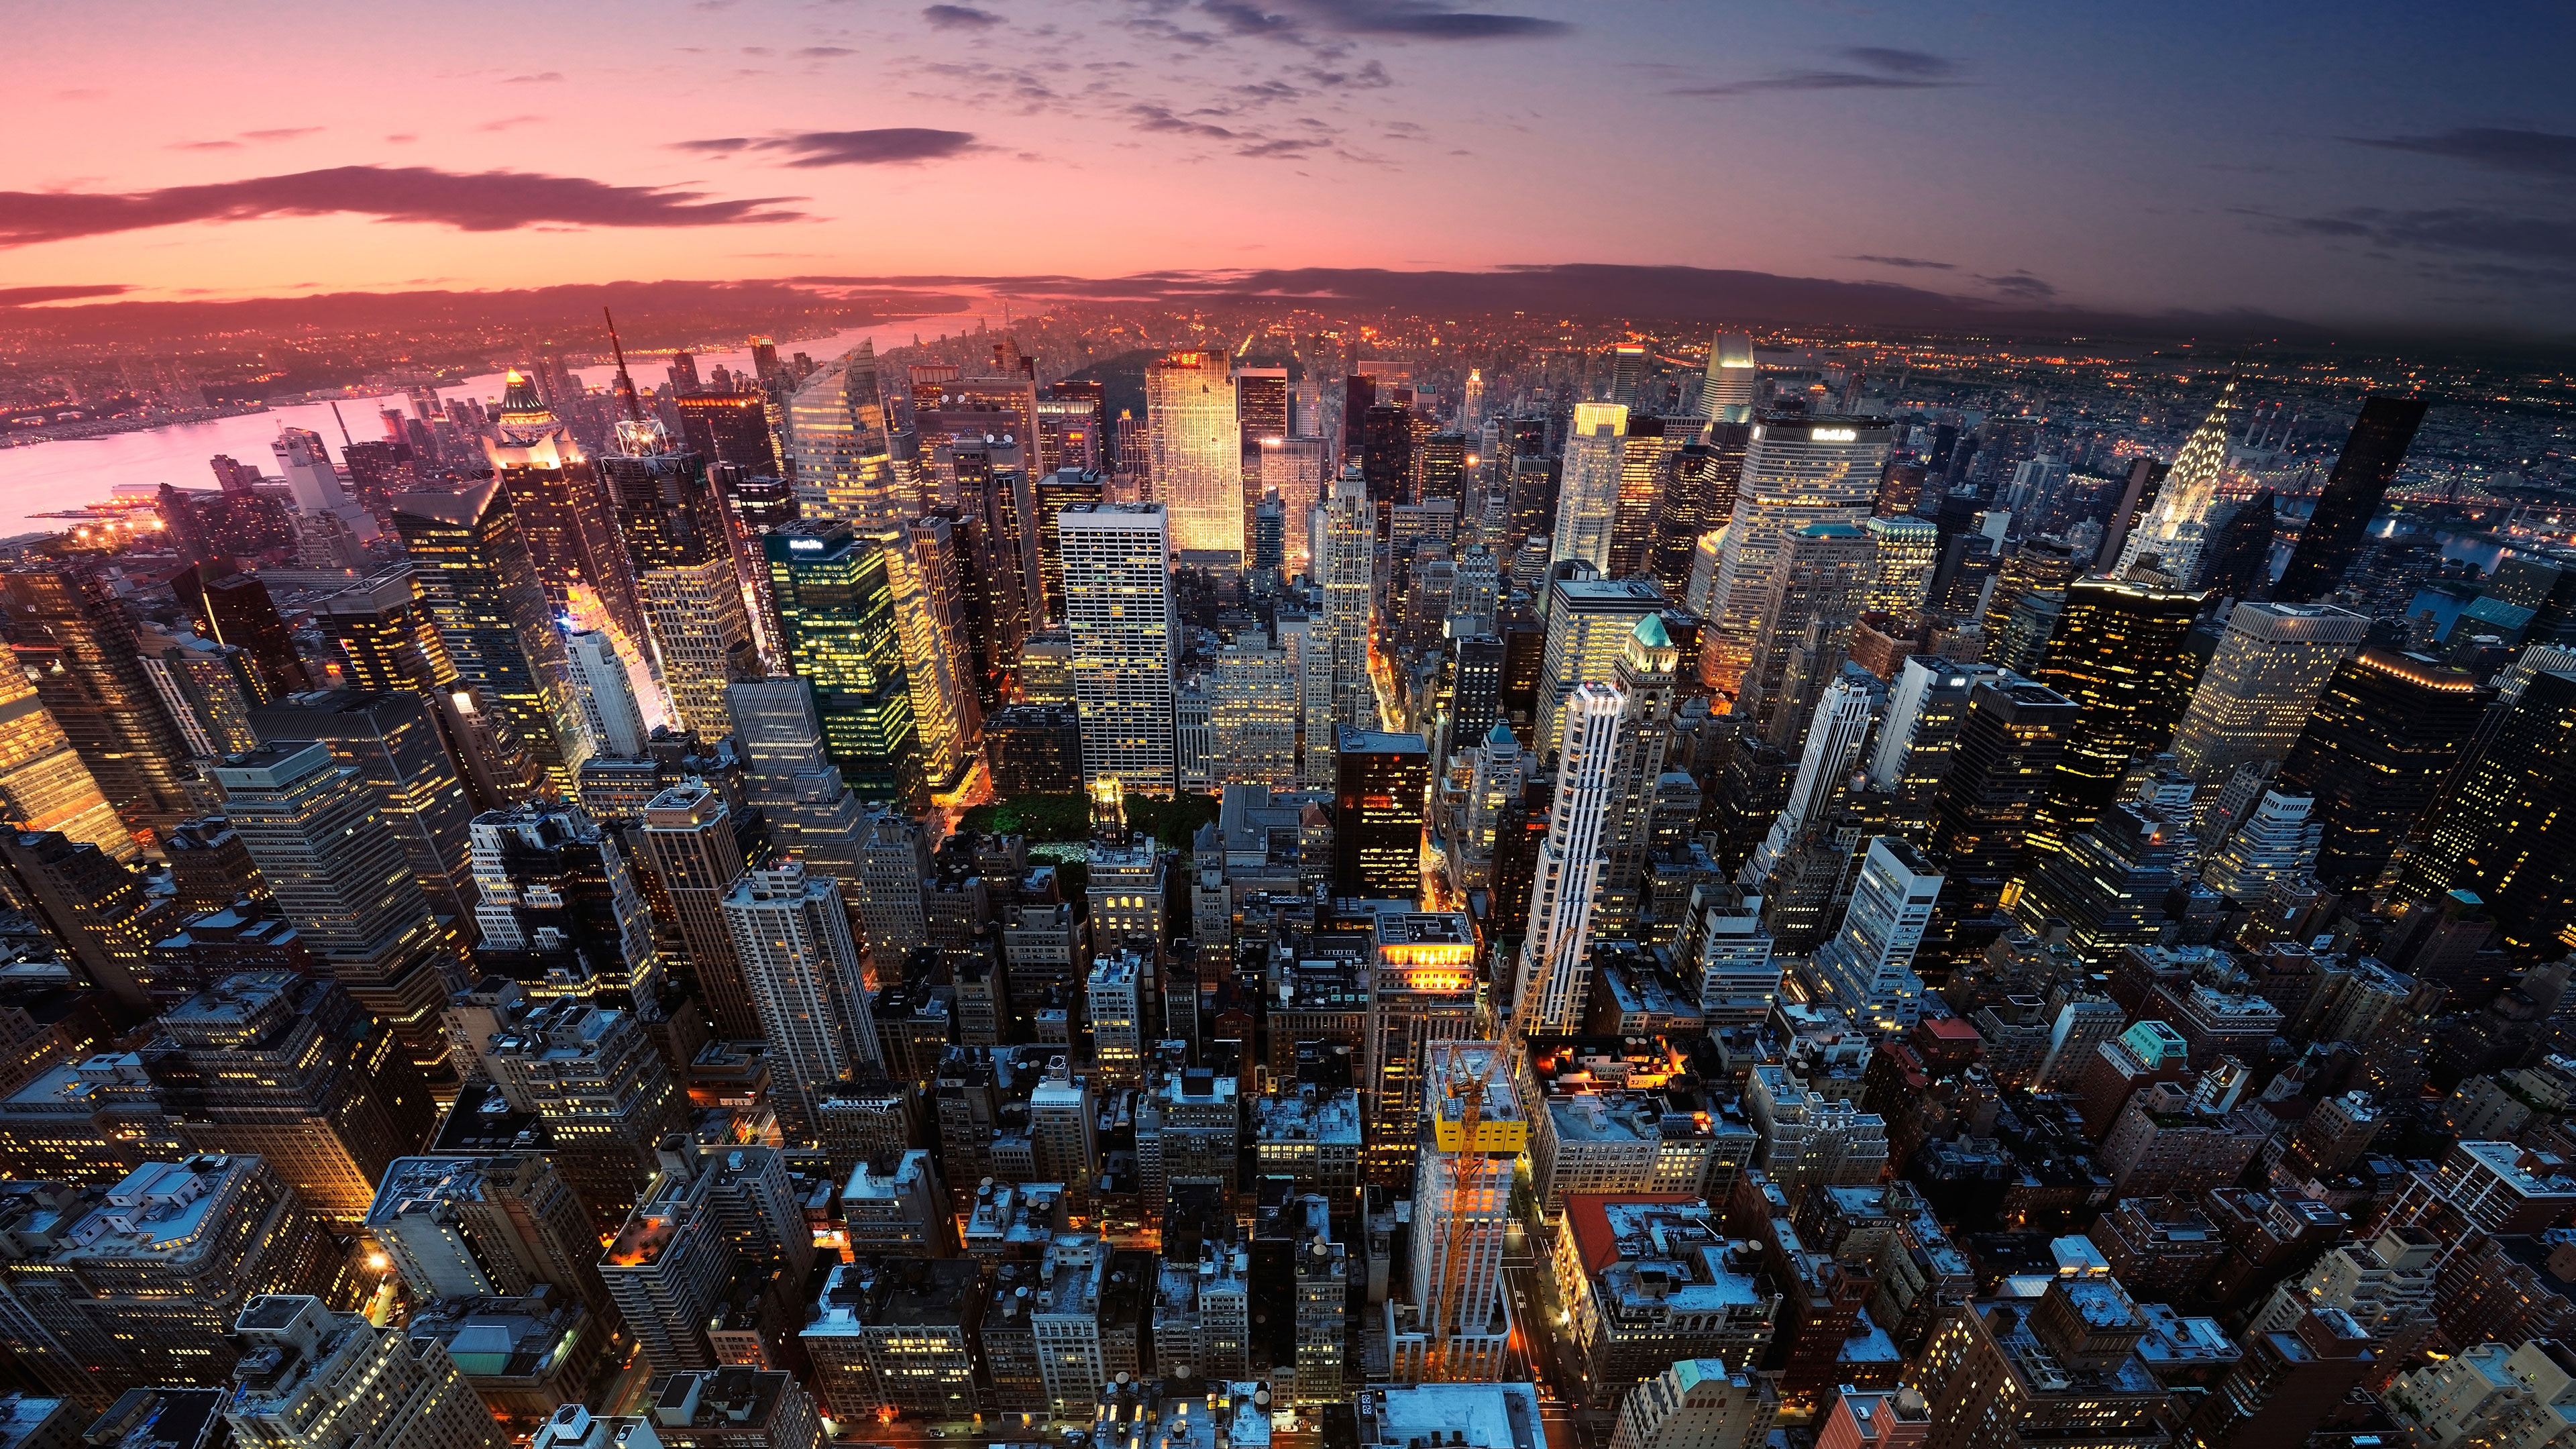 New York 4k Ultra Hd Wallpaper Background Image 3840x2160 Id